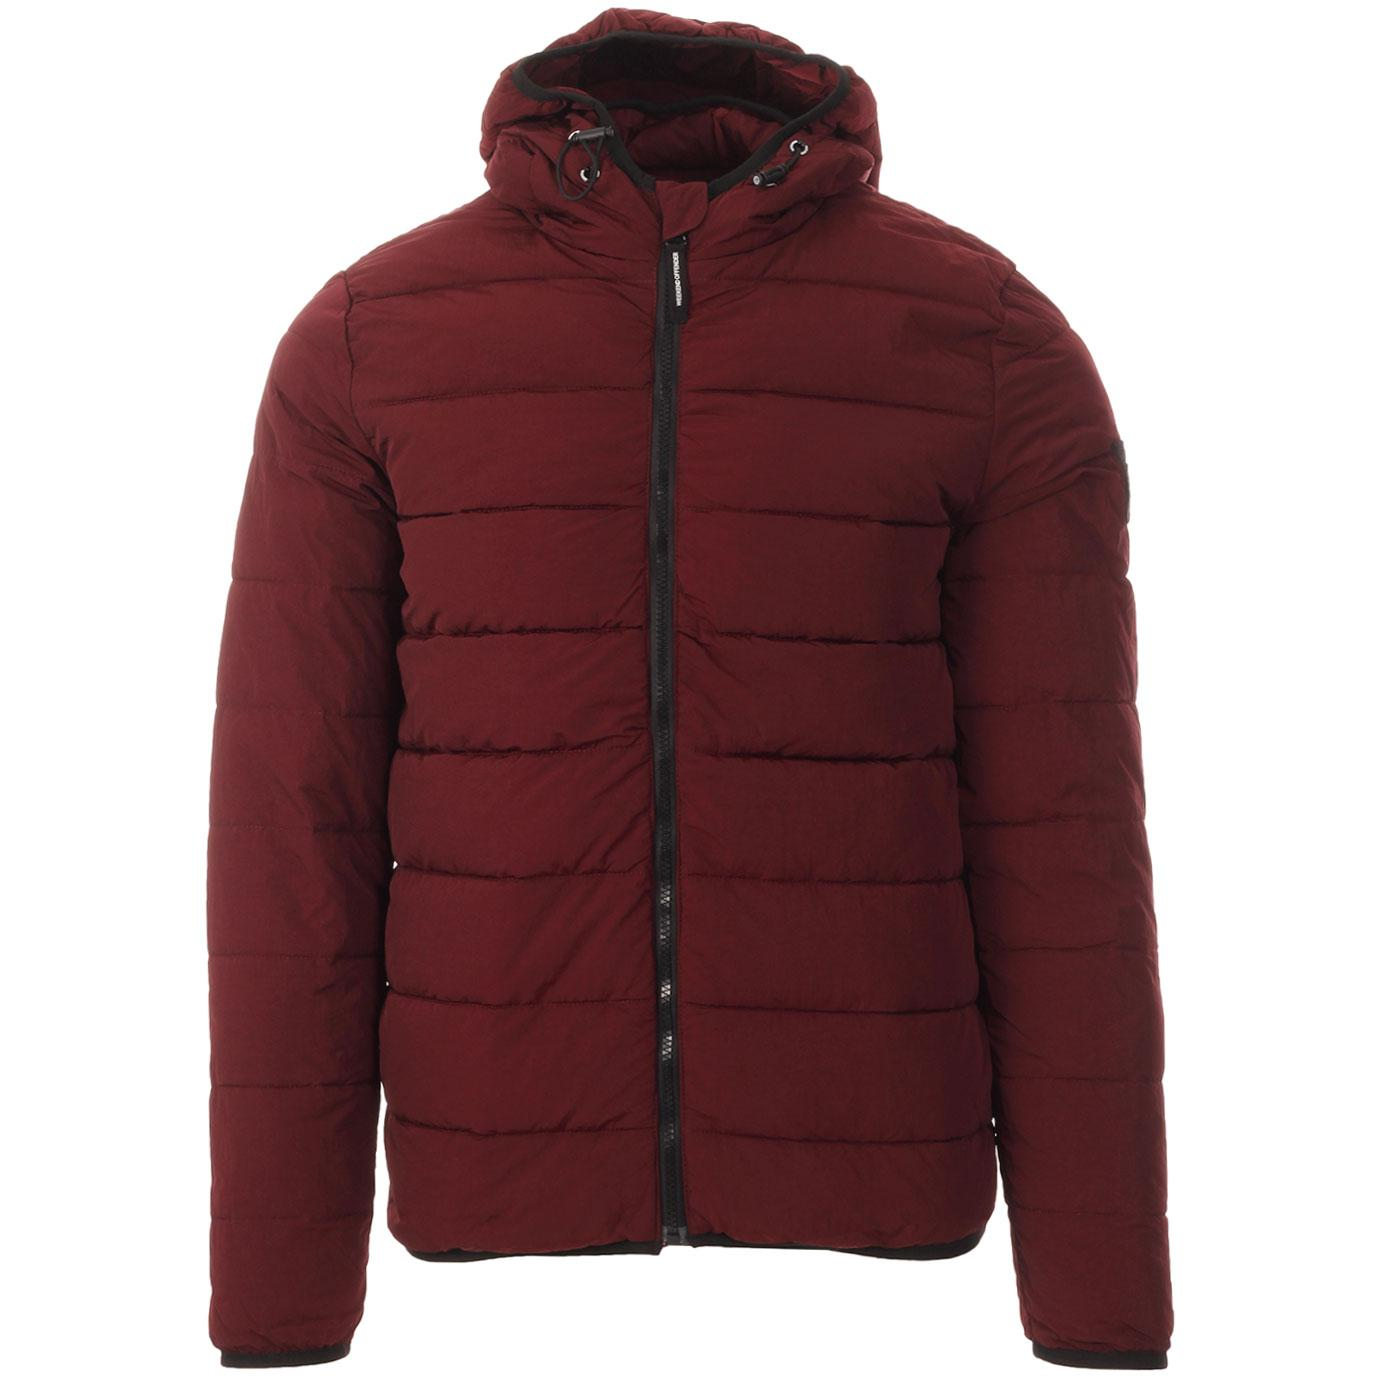 La Guardai WEEKEND OFFENDER Padded Jacket BURGUNDY